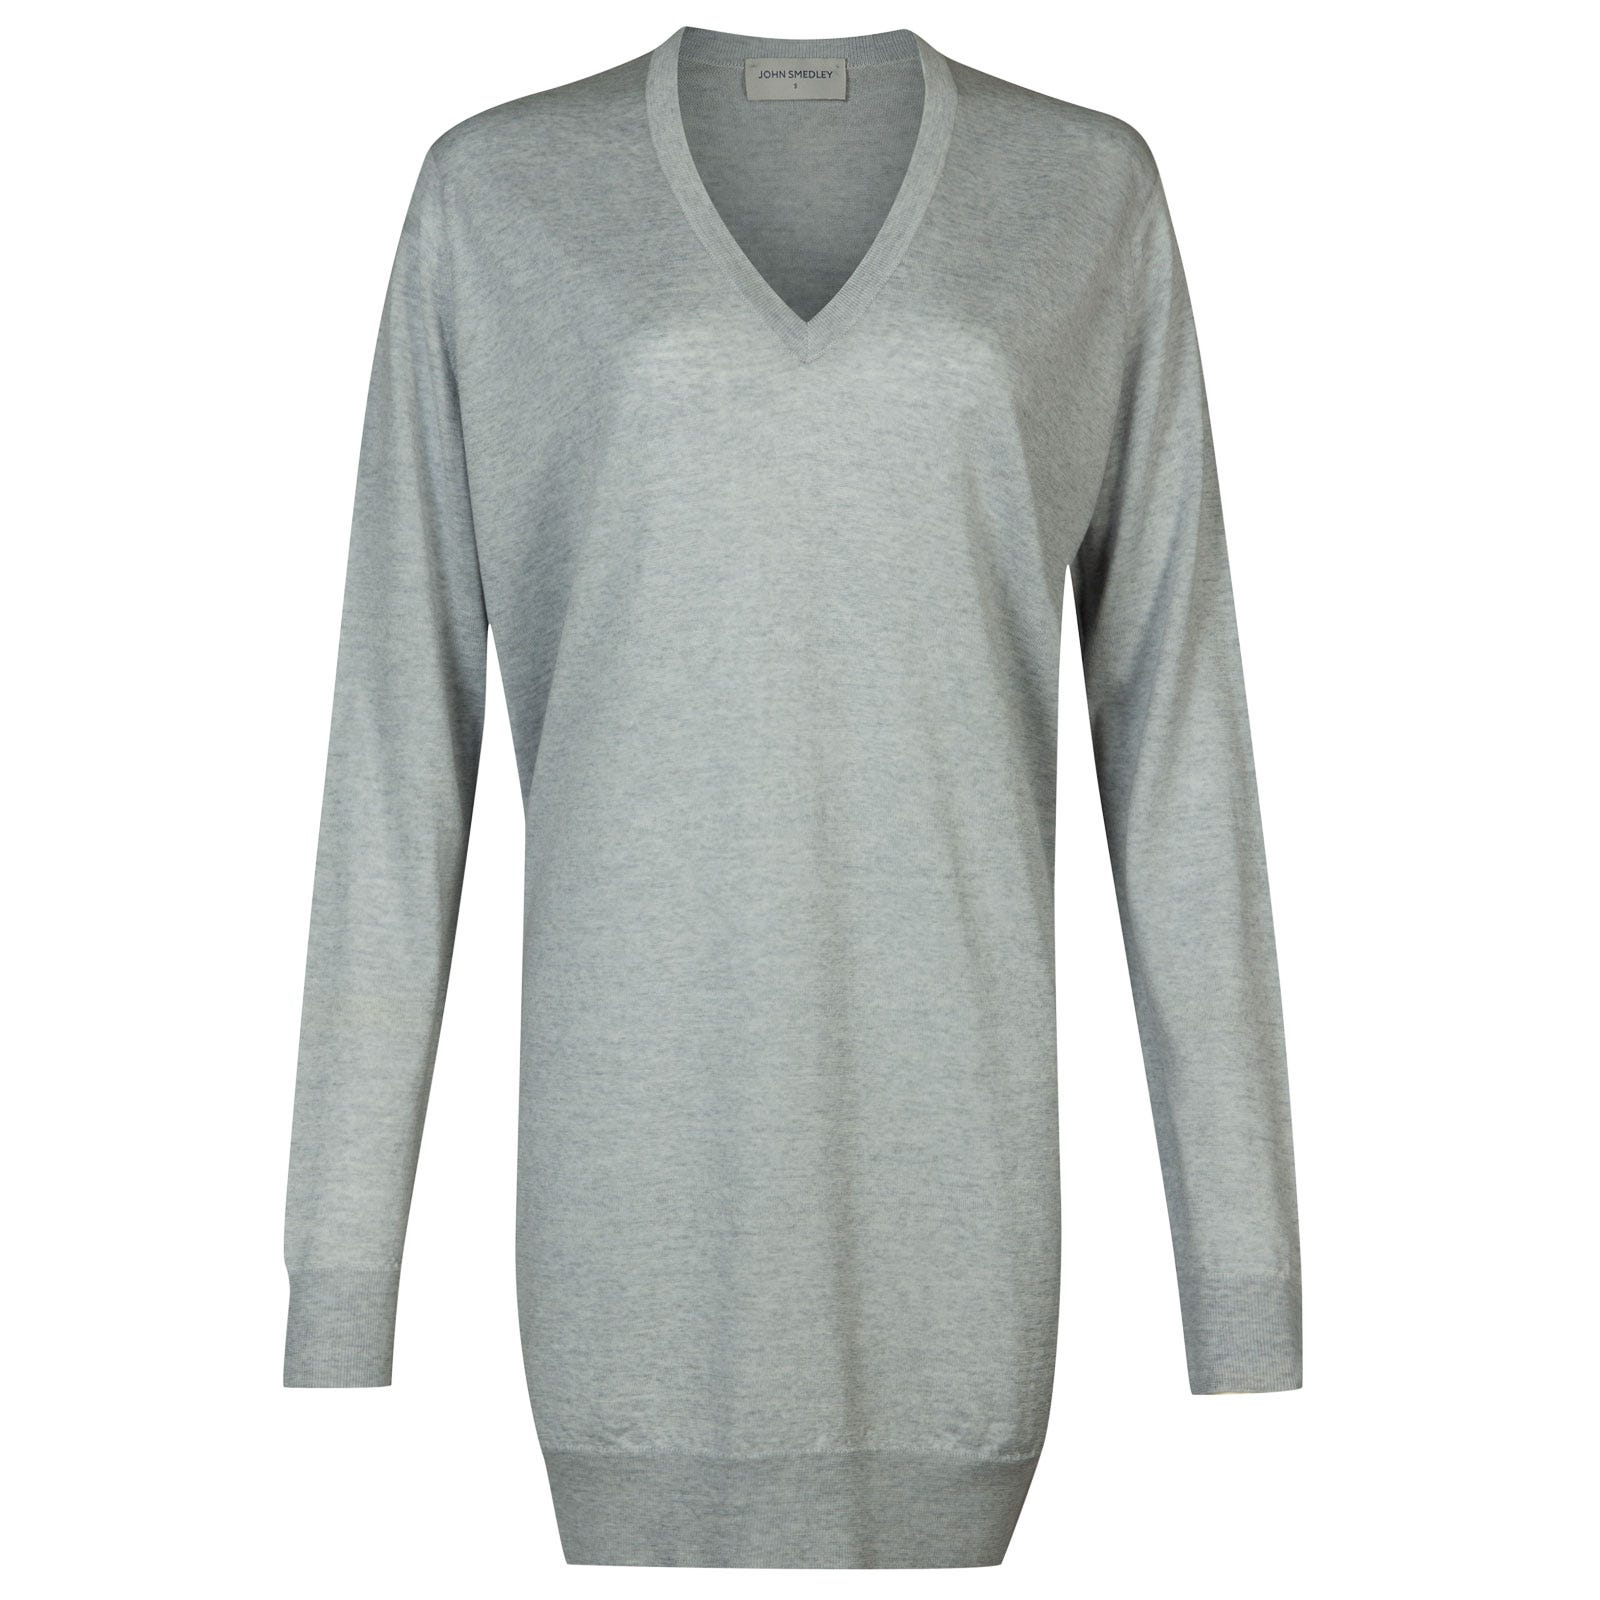 John Smedley Alma Merino Wool Sweater in Bardot Grey-S